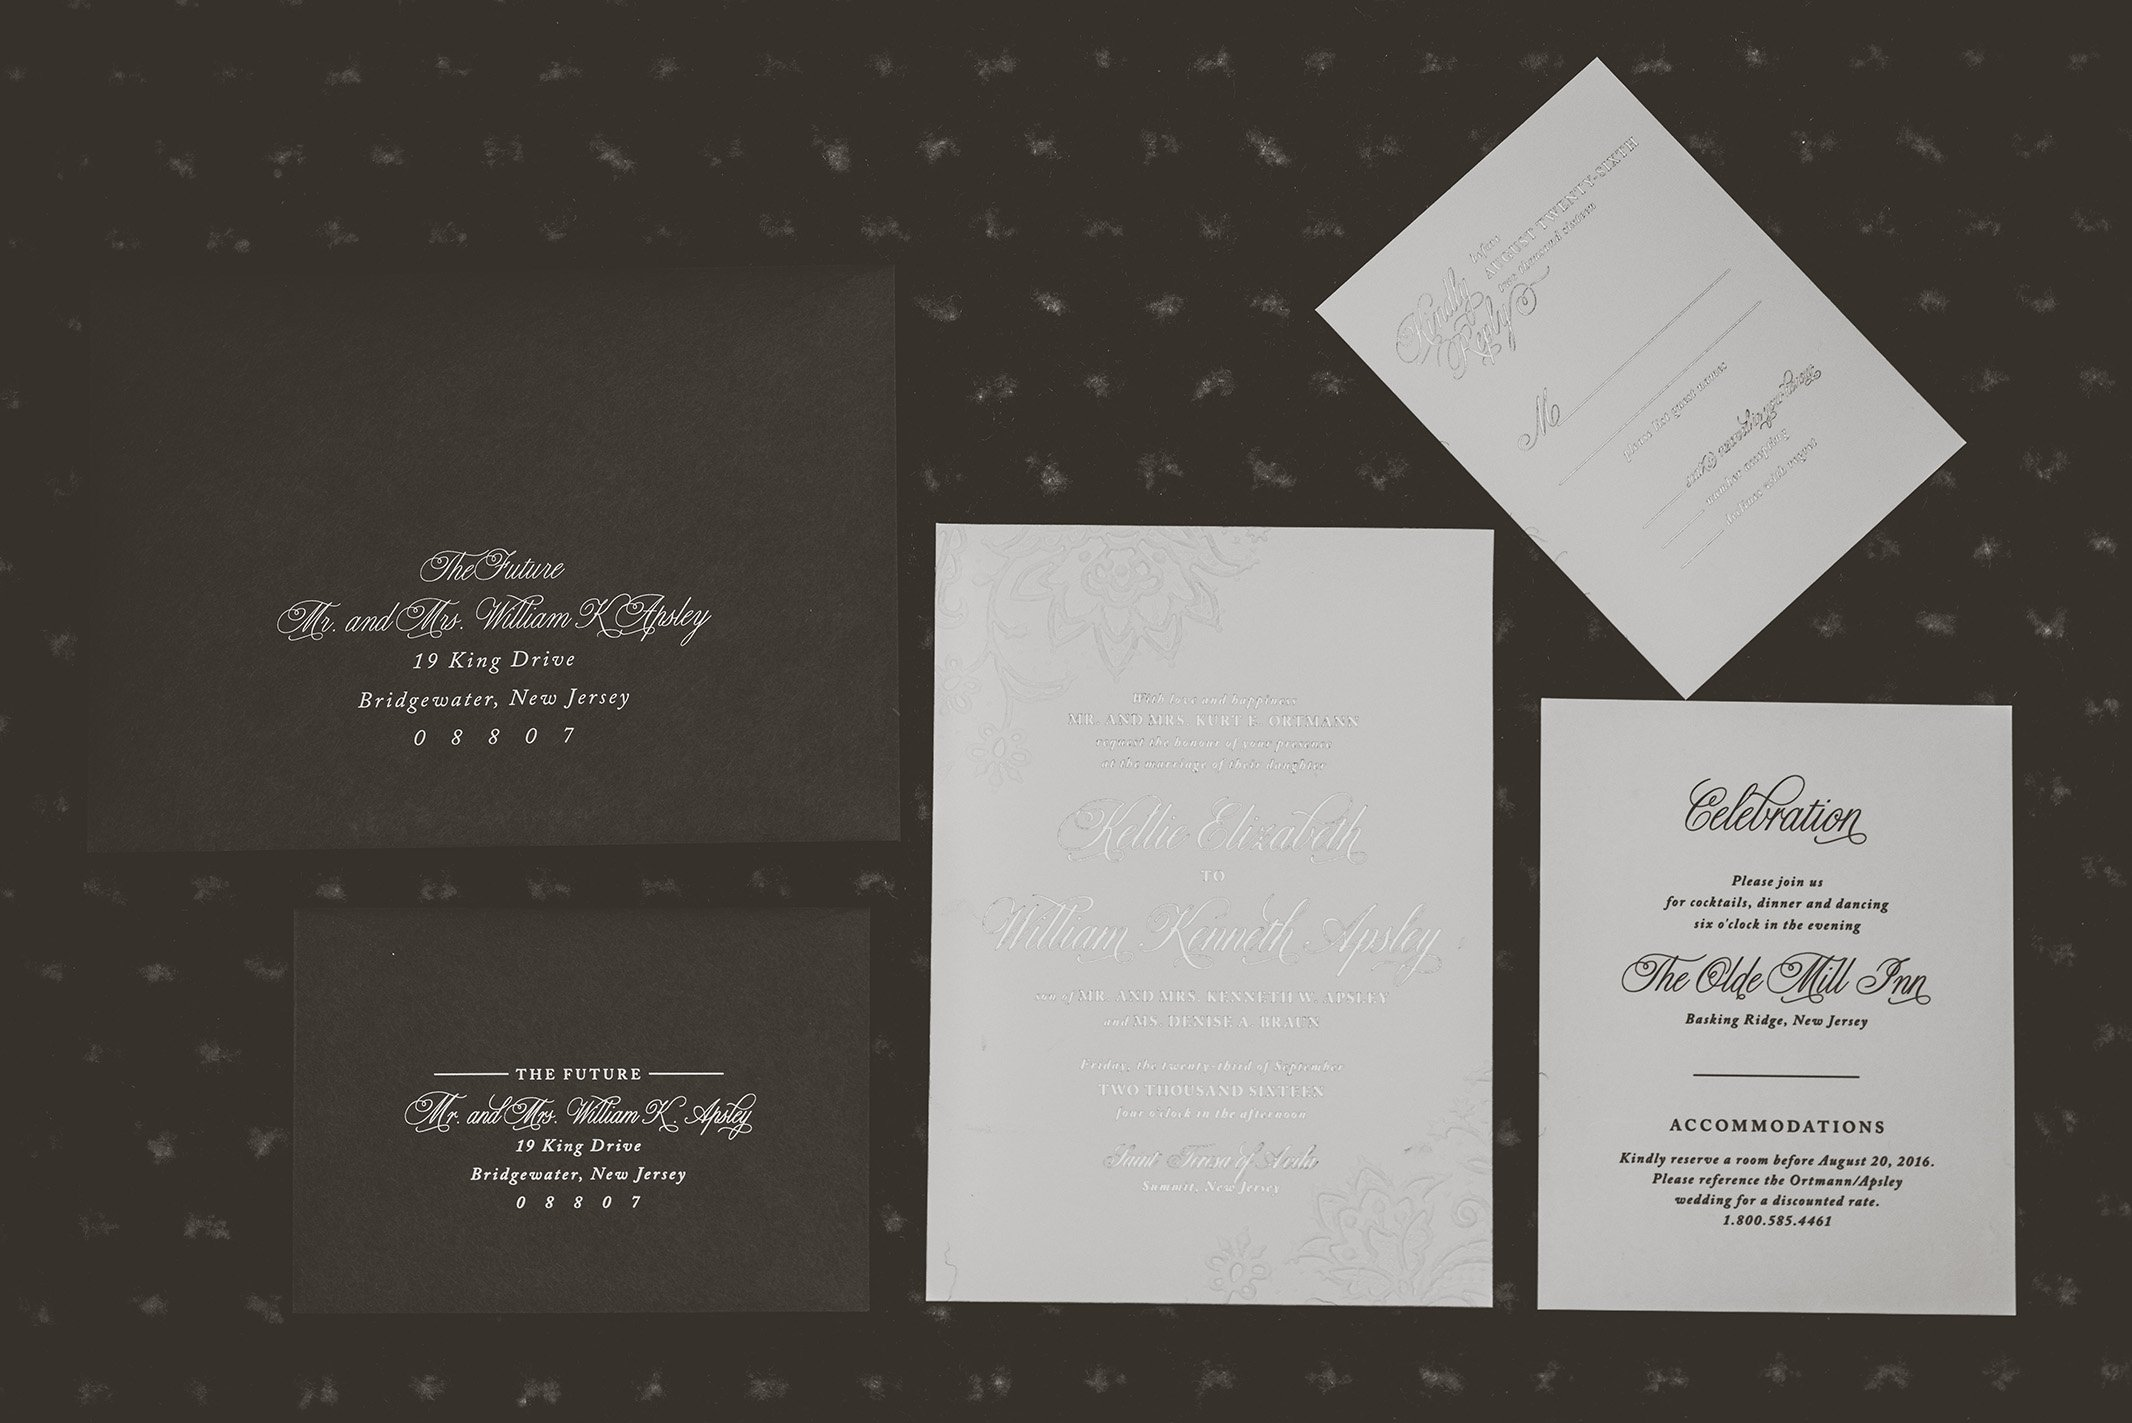 Wedding-Photography-Invitation-Card details